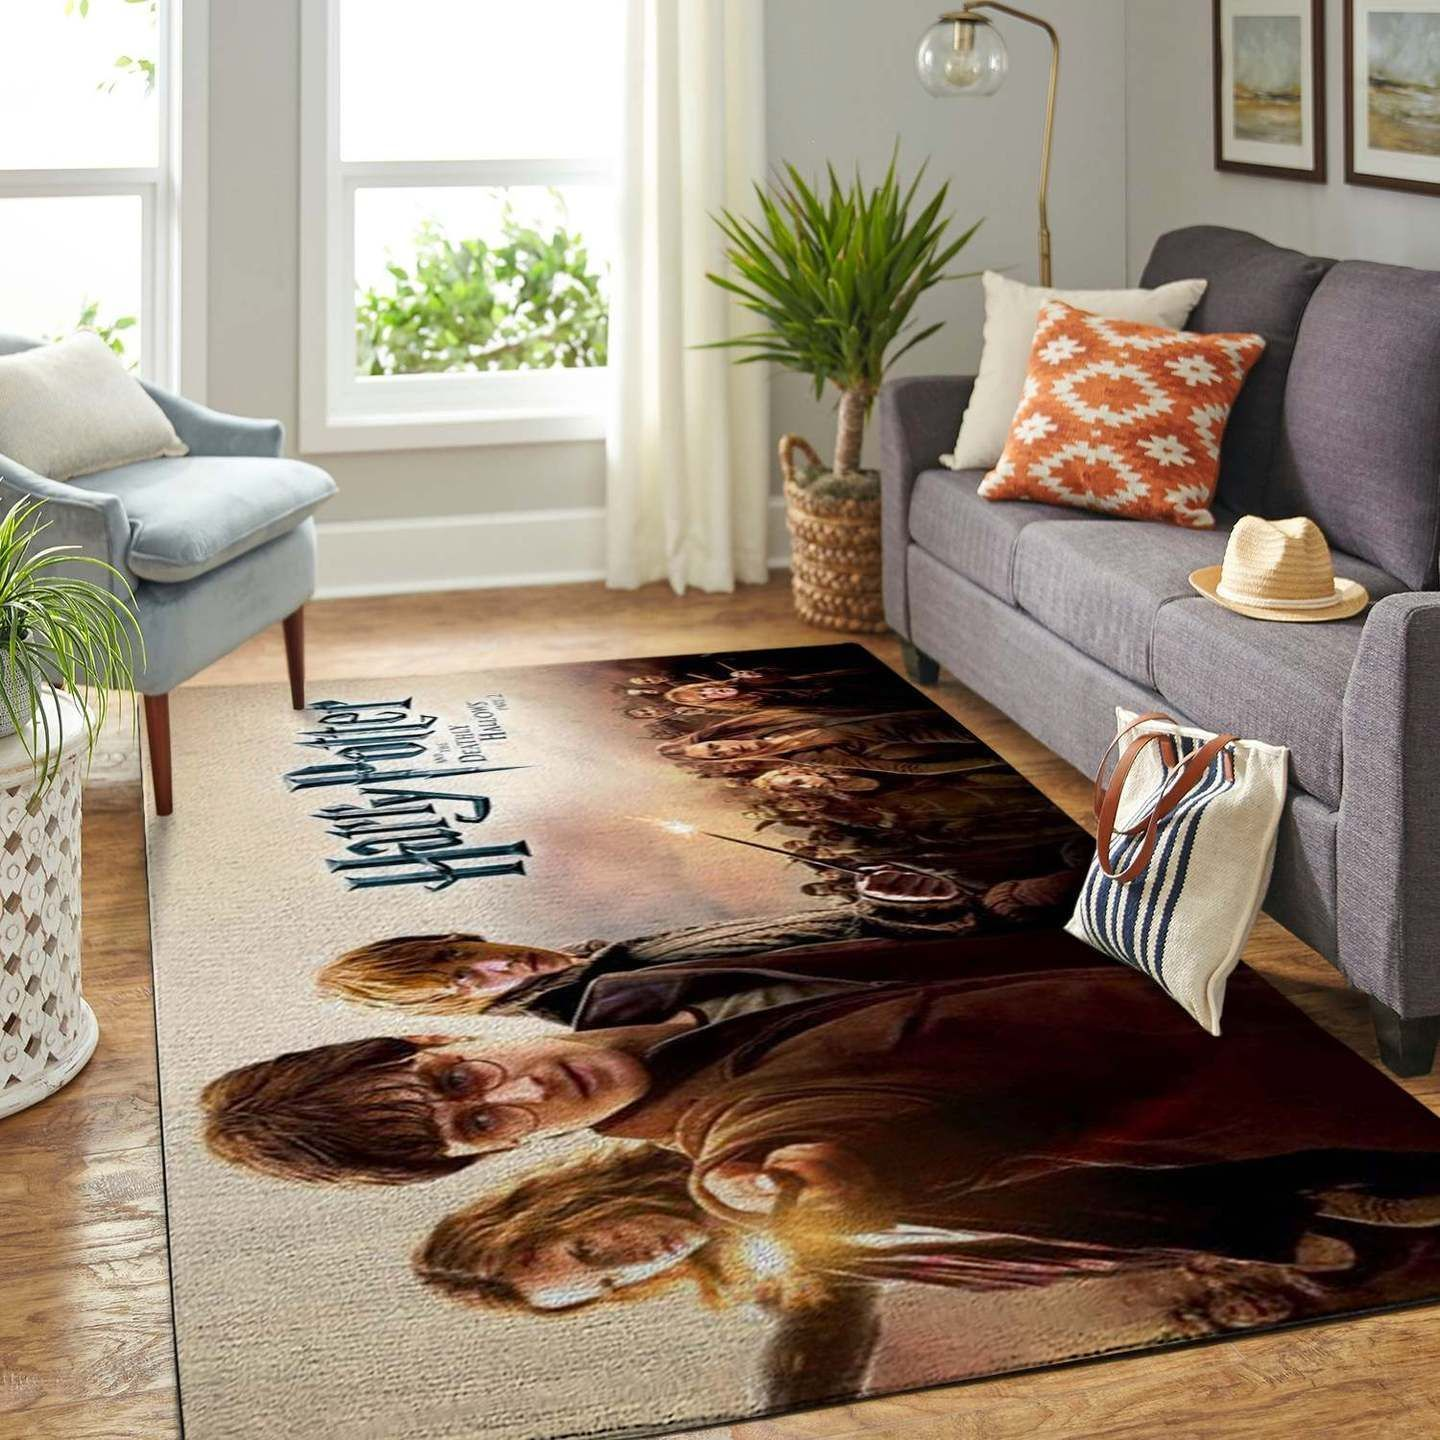 Harry Potter Hermione Ron Rug